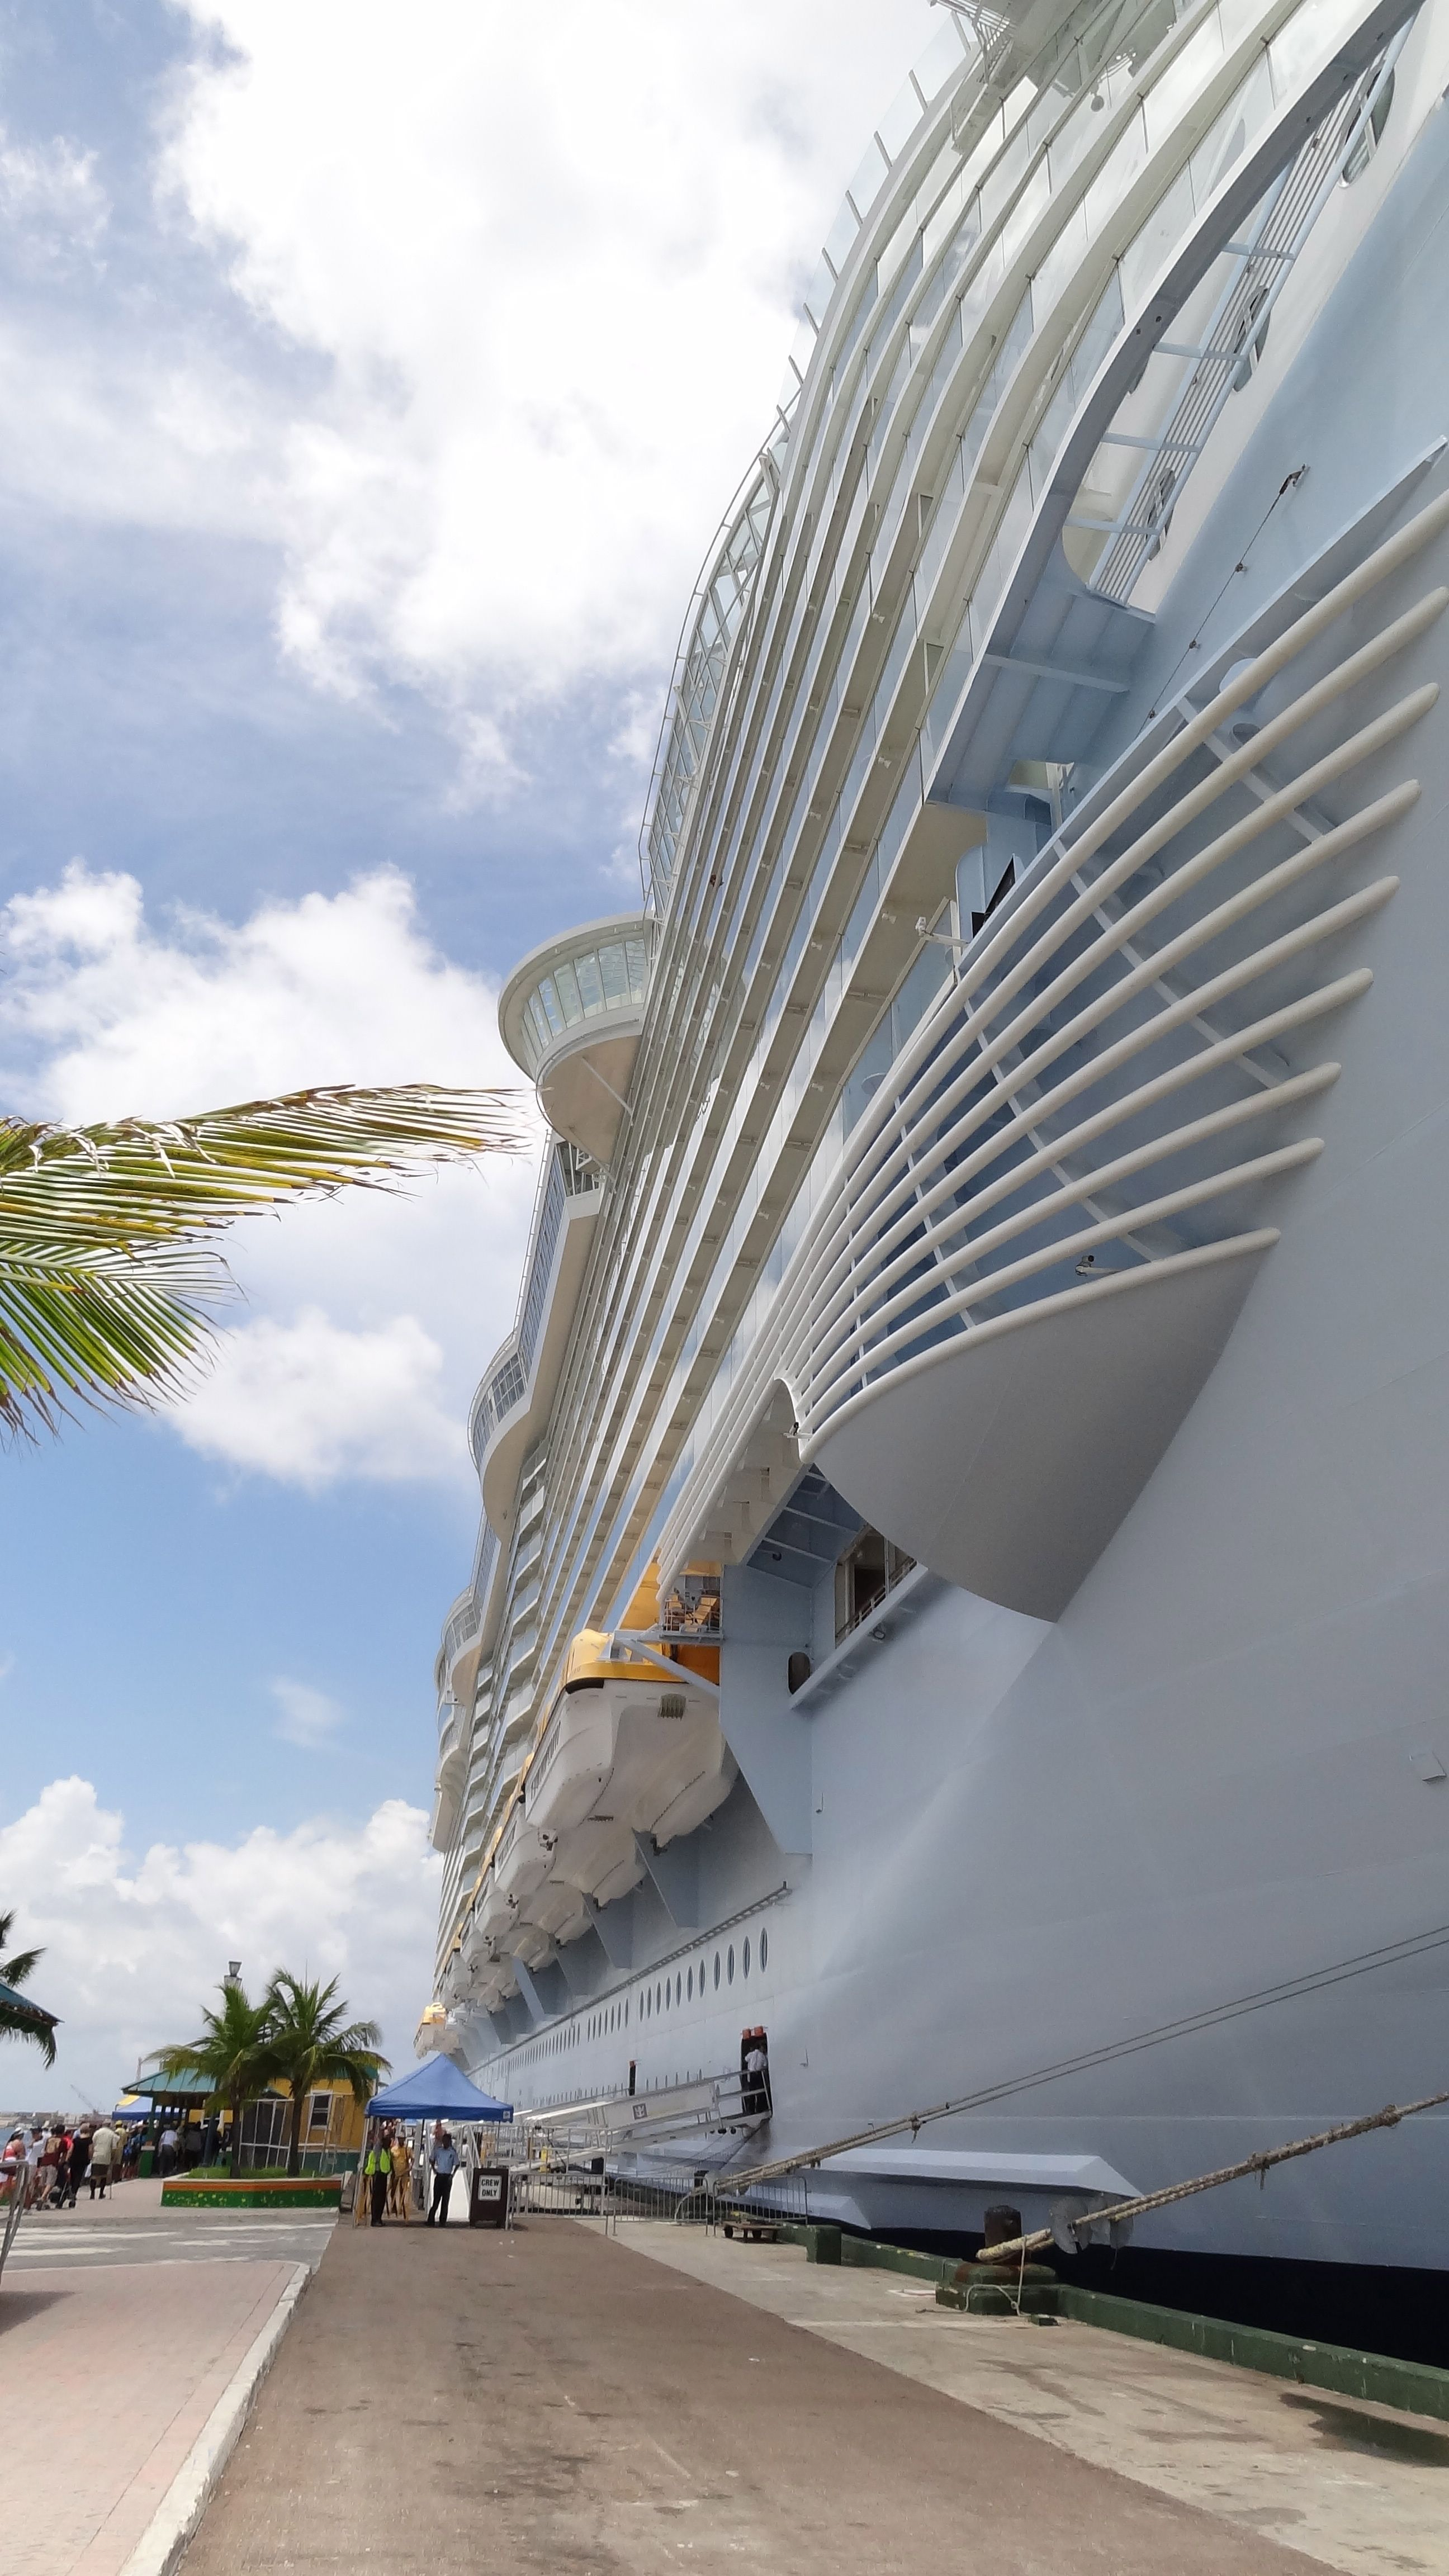 The beauty and size of the Allure of the Seas! | Cruise ship